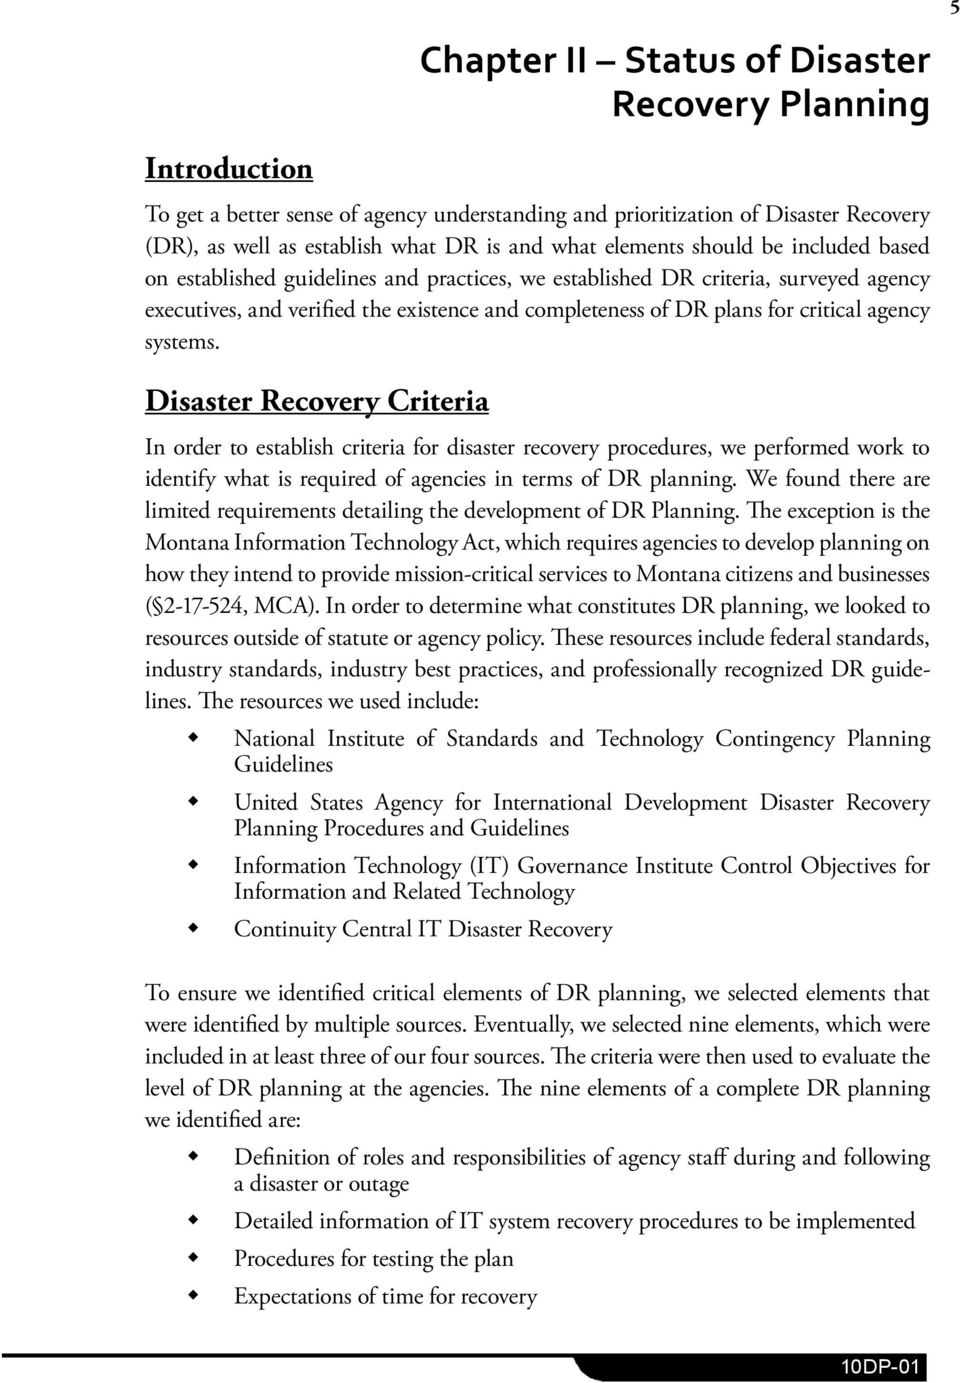 agency systems. Disaster Recovery Criteria In order to establish criteria for disaster recovery procedures, we performed work to identify what is required of agencies in terms of DR planning.